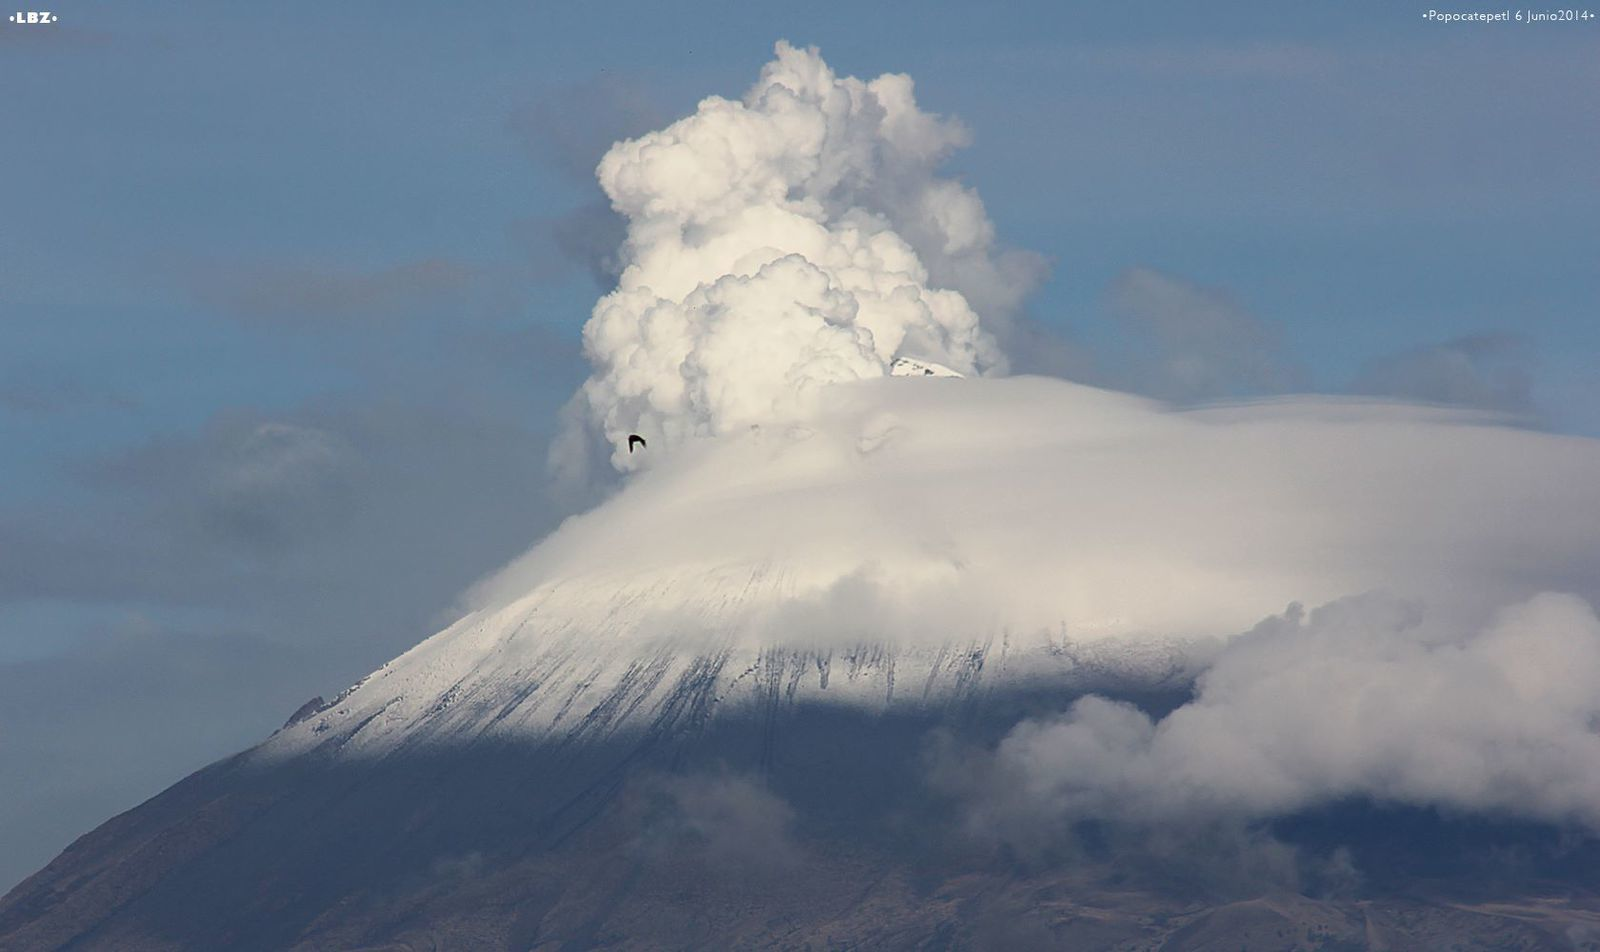 Le Popocatépetl - photo LBZ / 06.06.2014